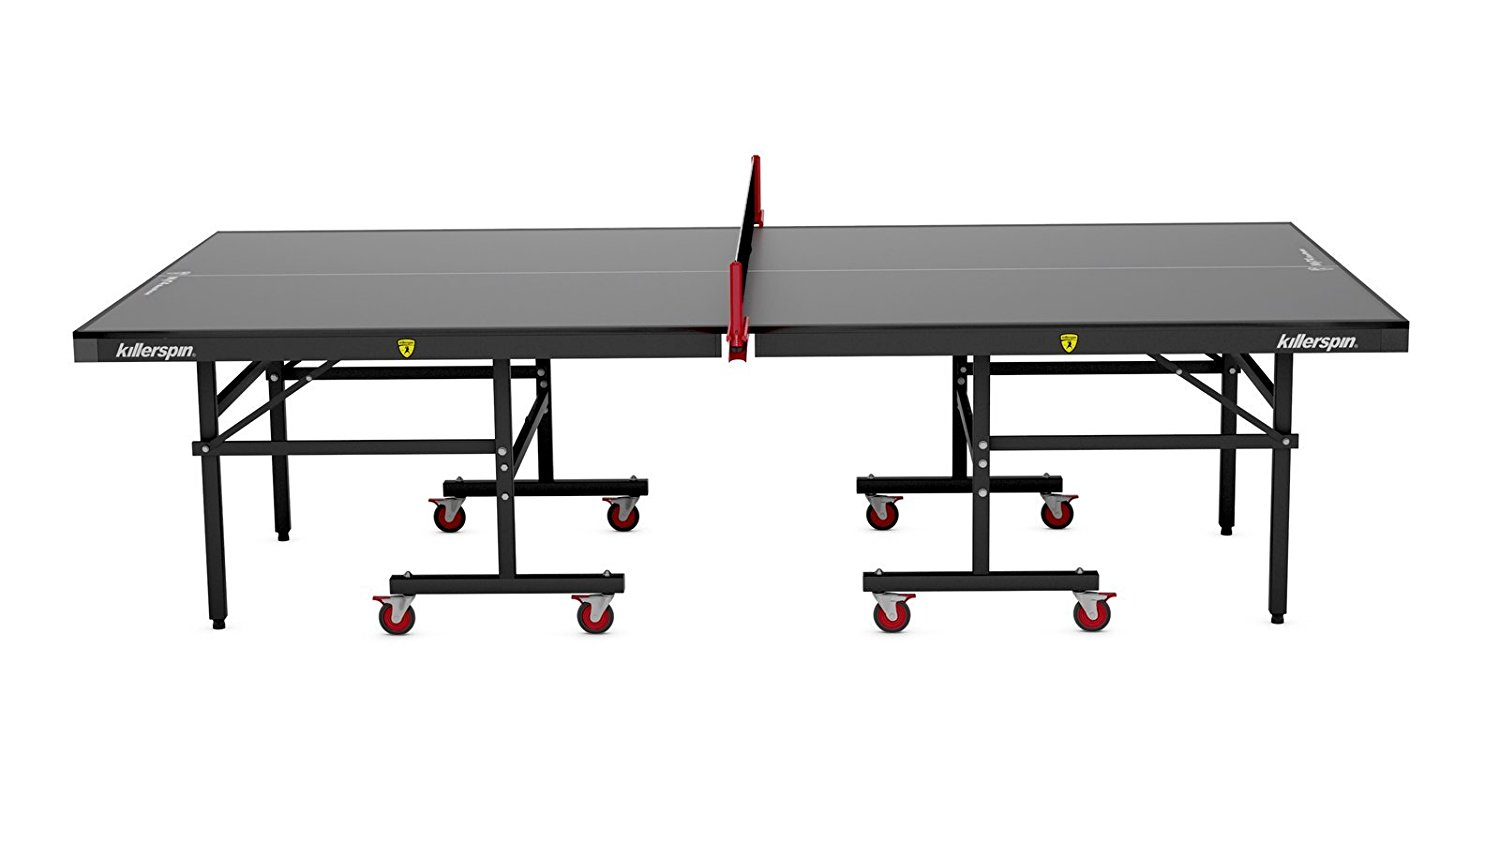 Killerspin myt4 pocket best outdoor ping pong tables for Convert indoor pool table to outdoor